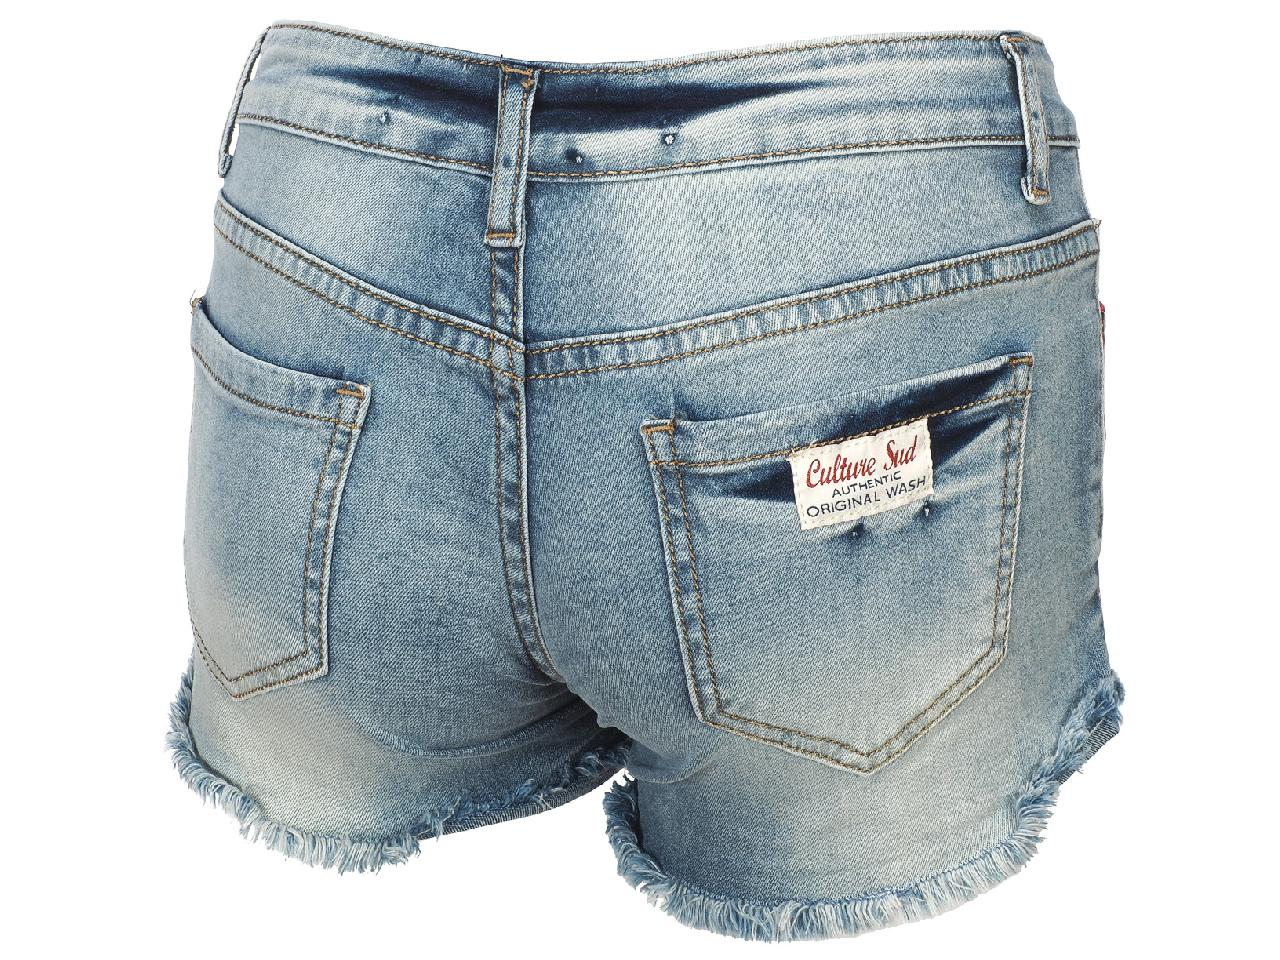 Bermuda-Shorts-Culture-sud-Sever-Short-Blue-75701-New thumbnail 5